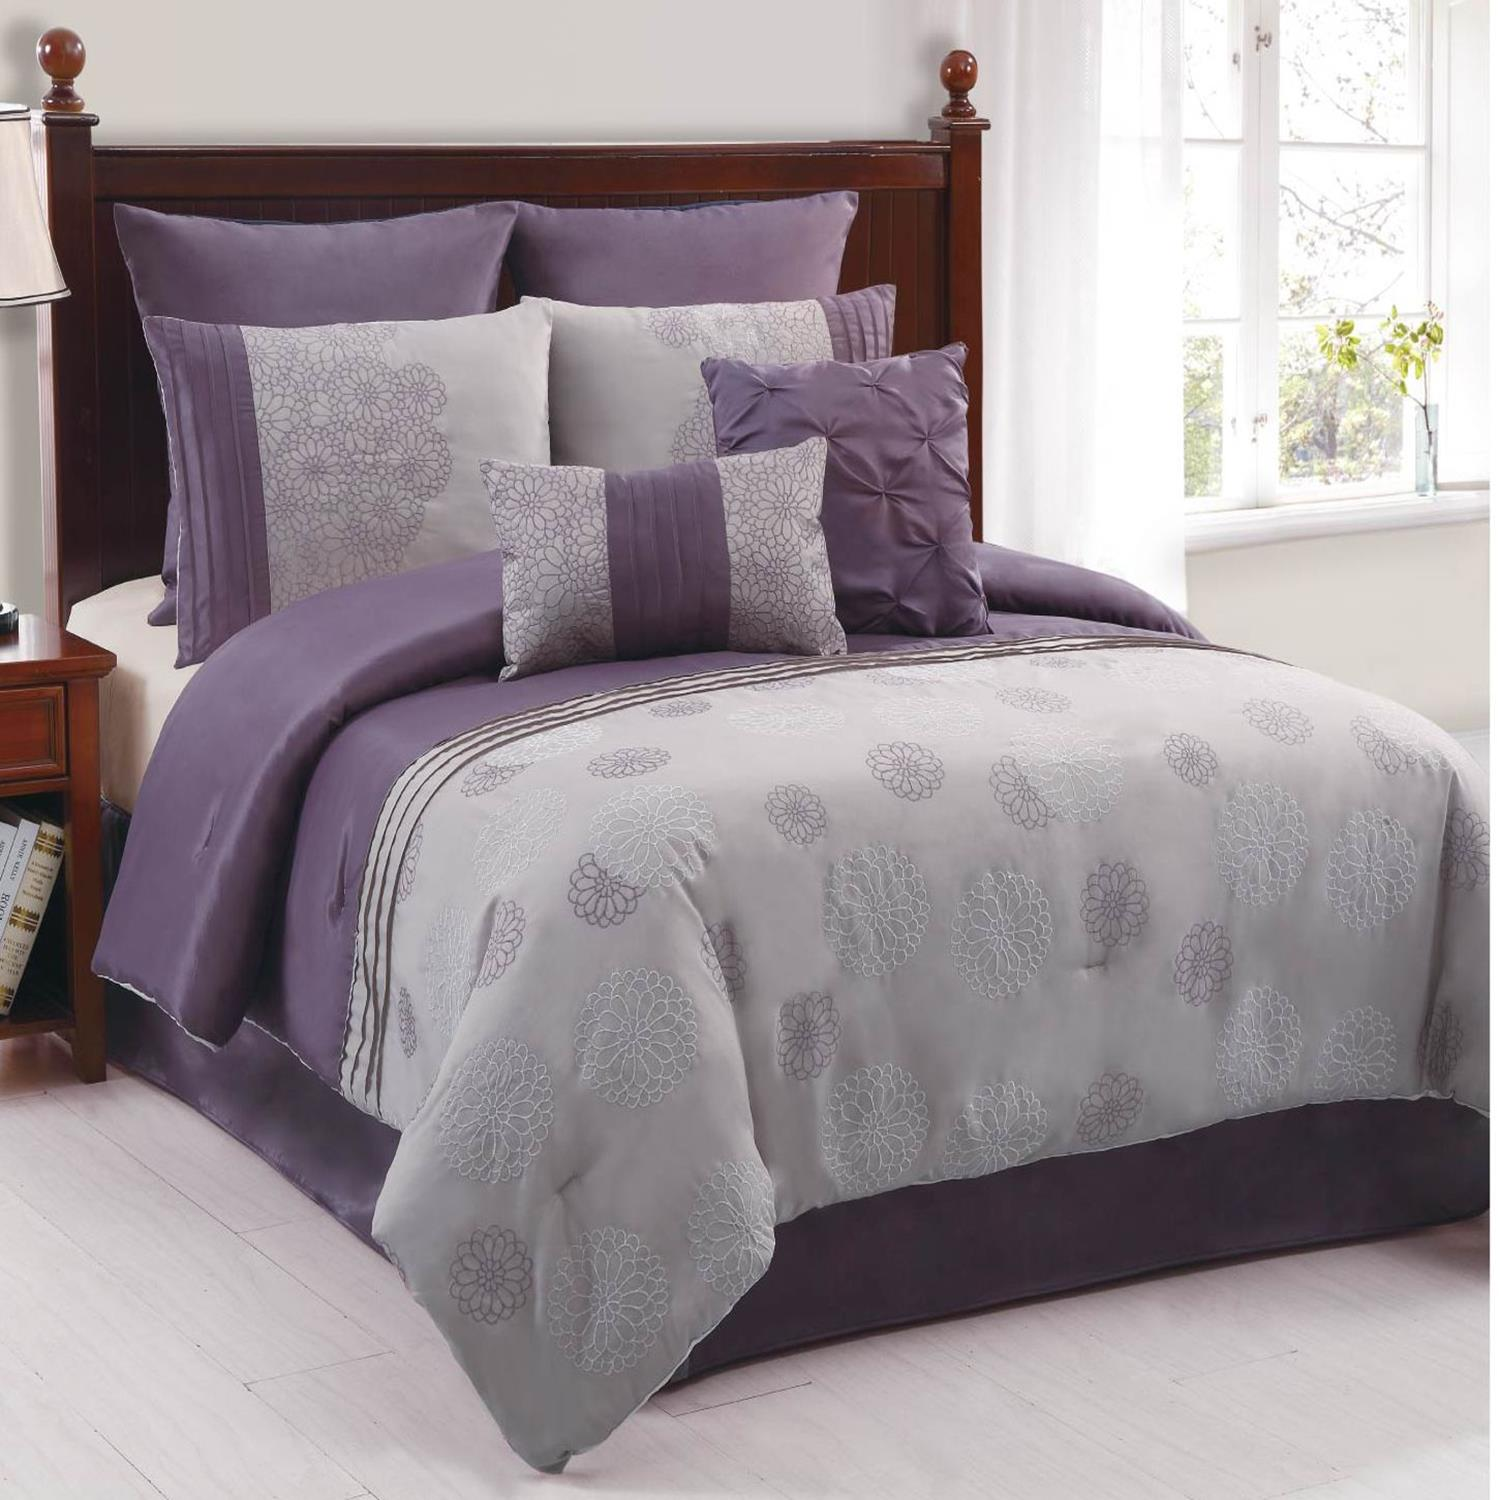 Bedding sets for women - About Amelle Purple Grey 8 Piece King Comforter Bed In A Bag Set New